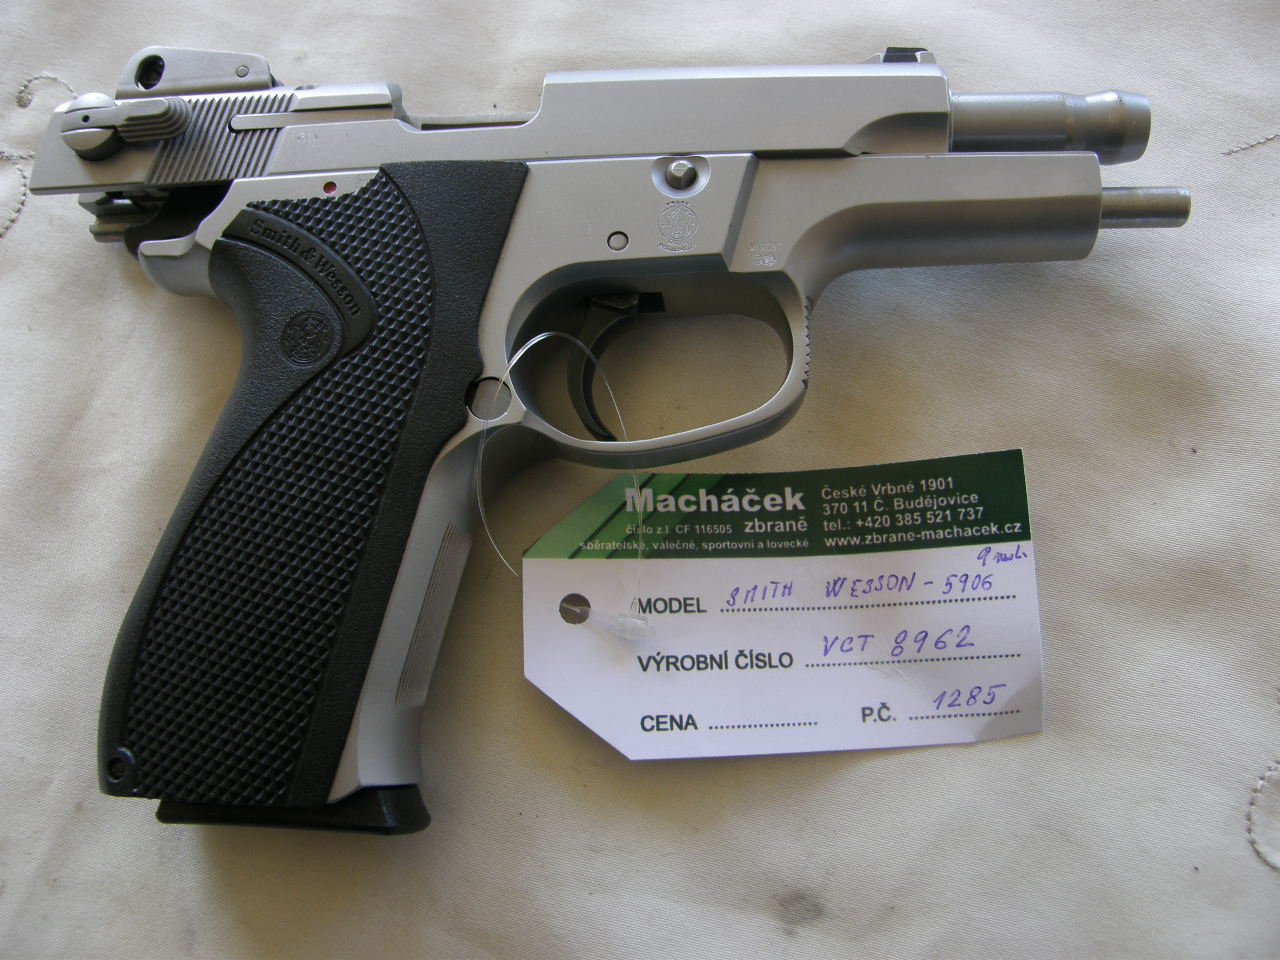 Pistole Smith Wesson Mod. 5906 v.č.VCT 8962 r. 9 mm L.